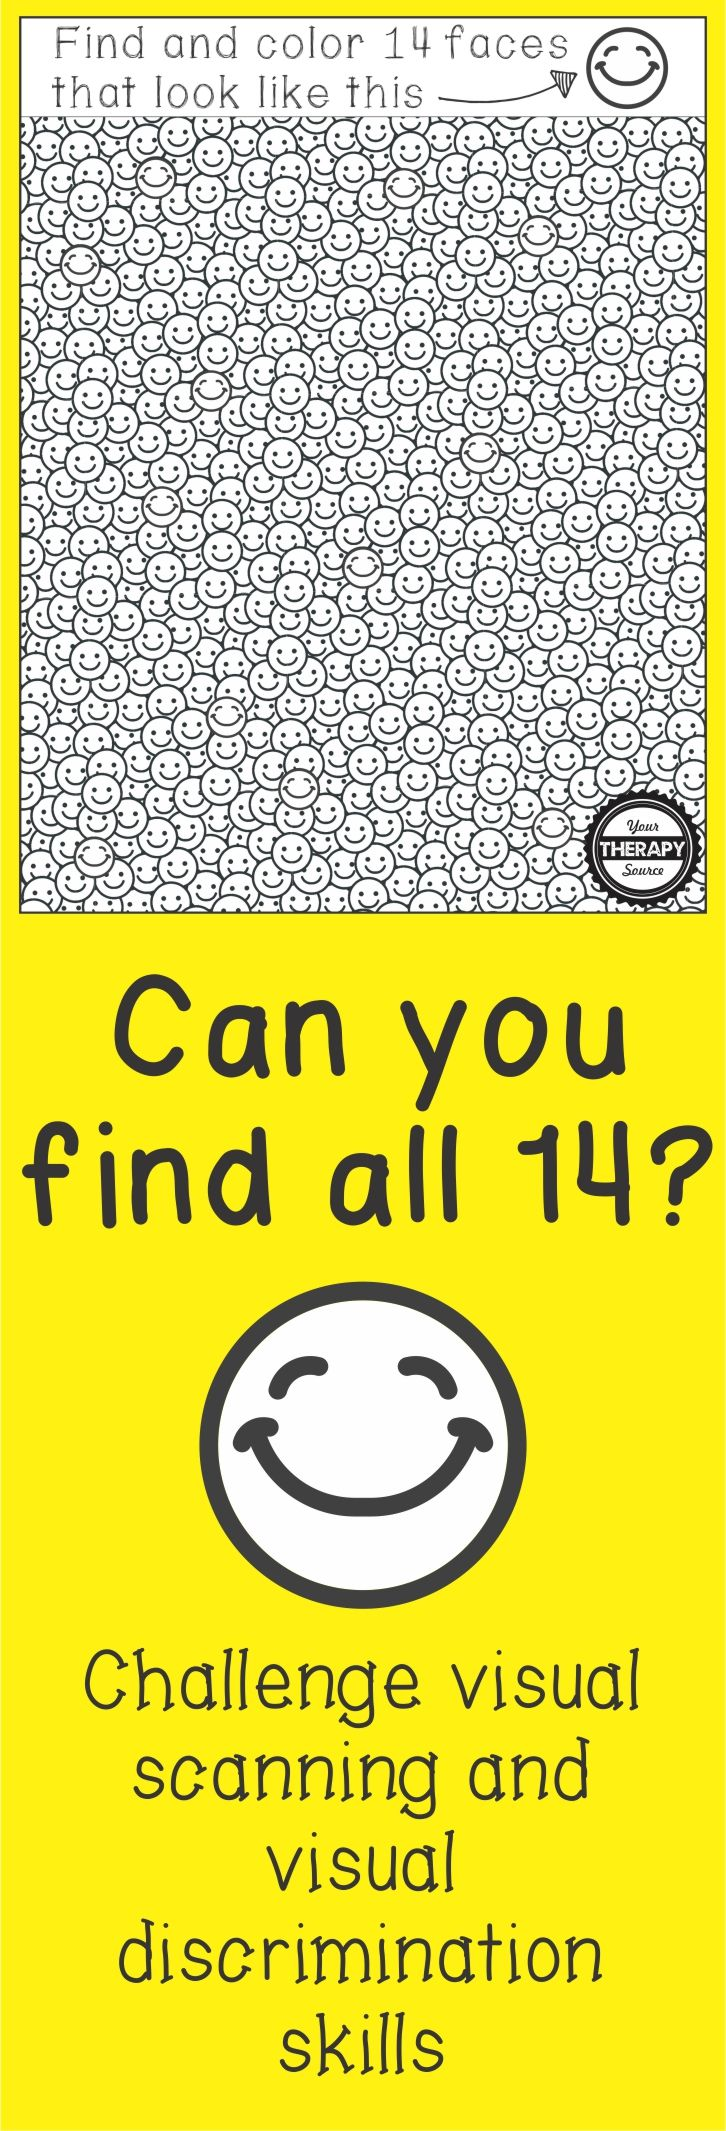 Smile Find - Visual Scanning, Discrimination, Figure Ground